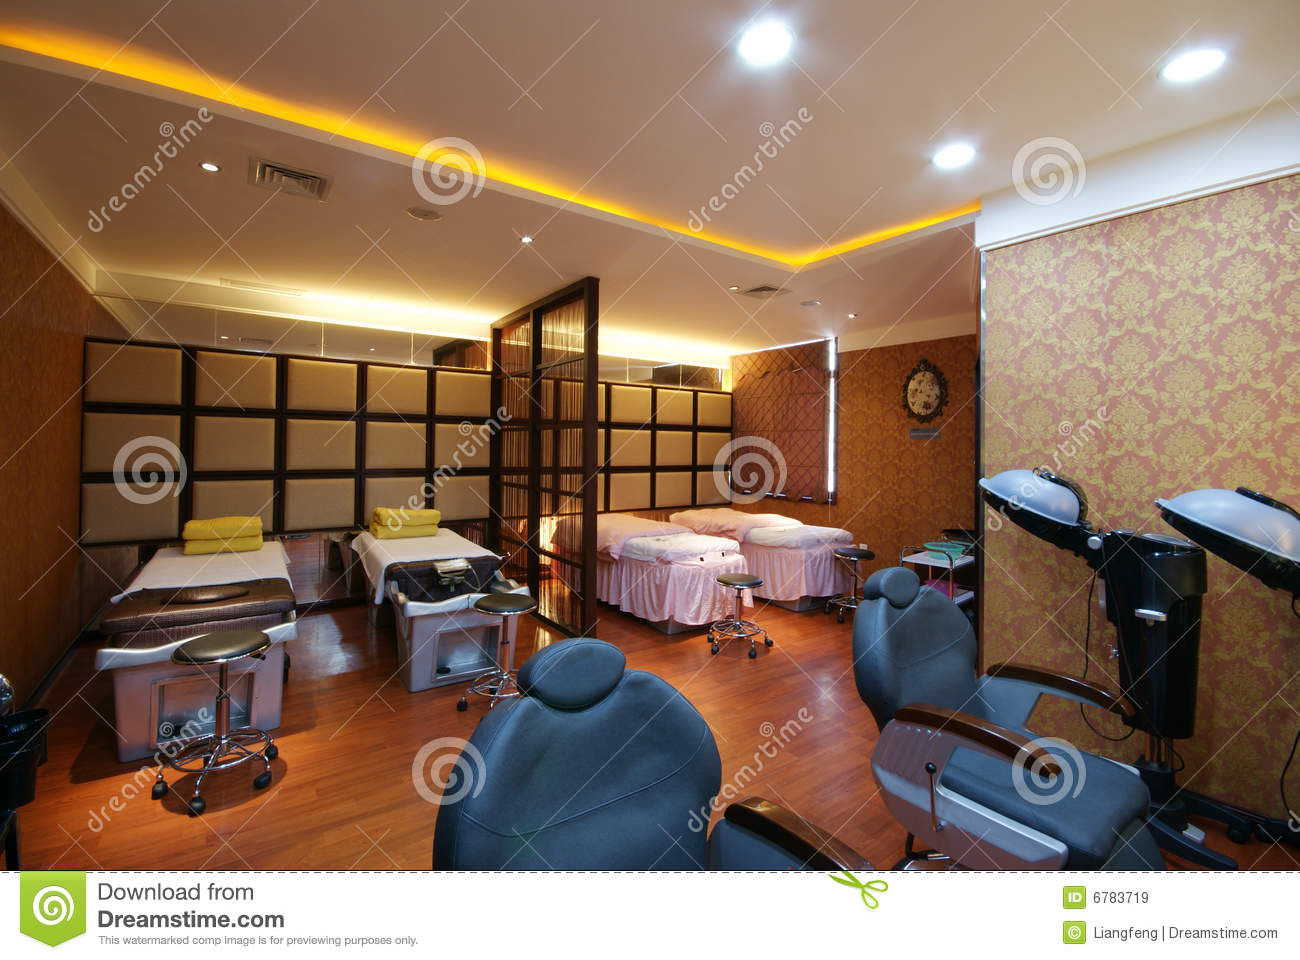 beauty salon decoration stock image image of hair body. Black Bedroom Furniture Sets. Home Design Ideas